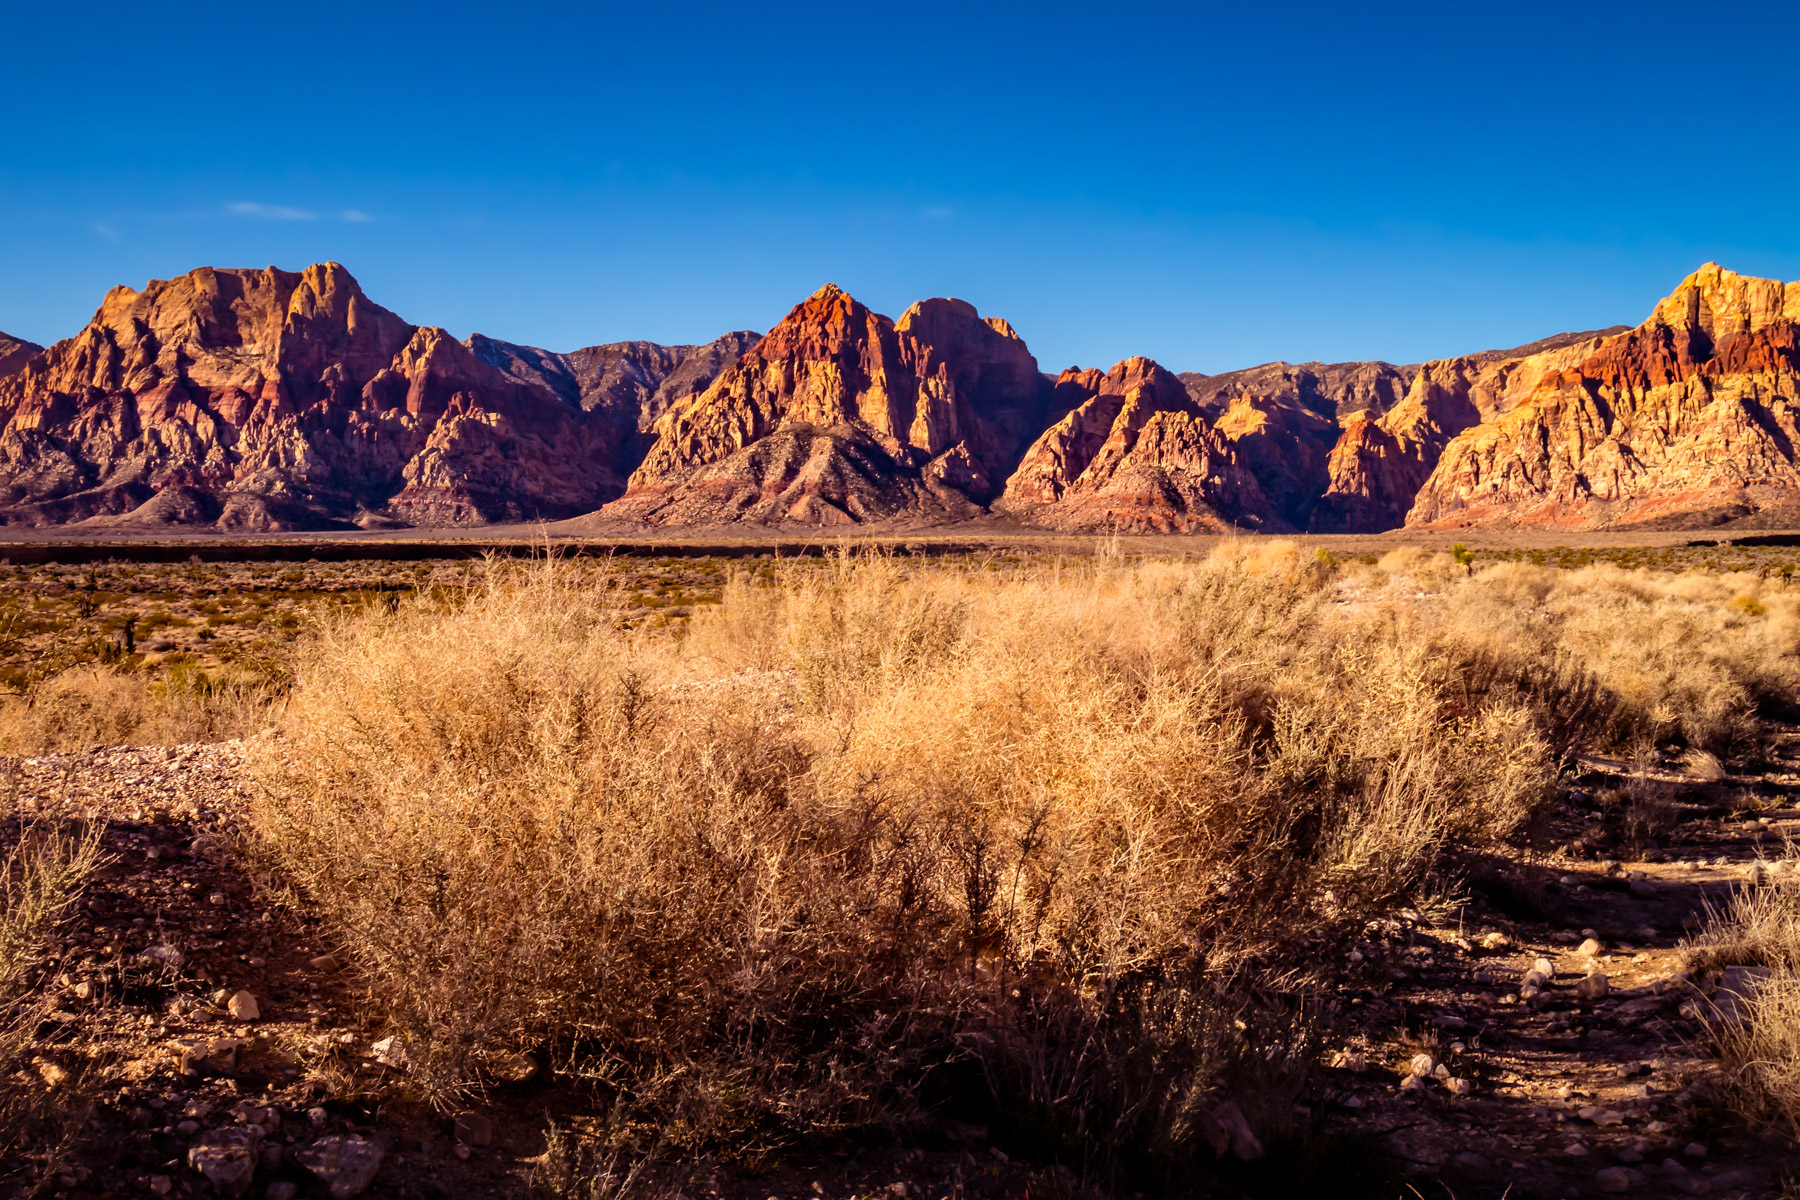 Desert brush grows amongst the mountains of Nevada's Red Rock Canyon.